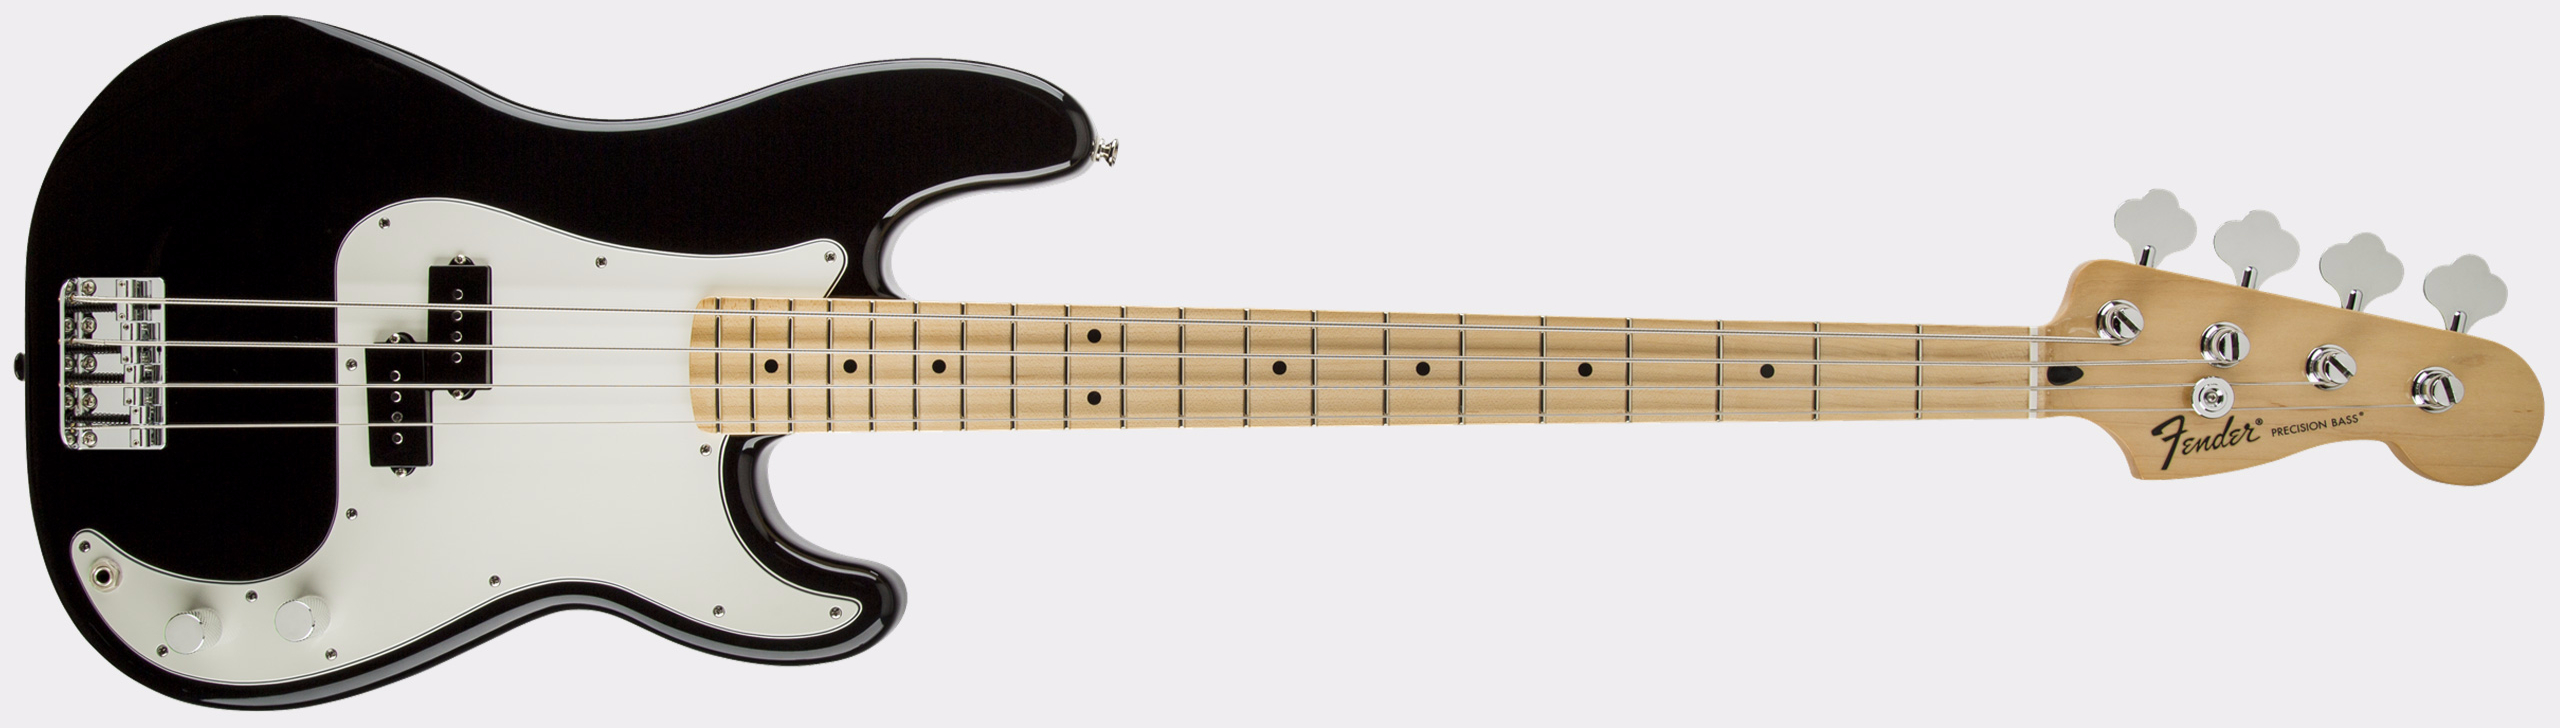 FENDER Standard Precision Bass MN Black